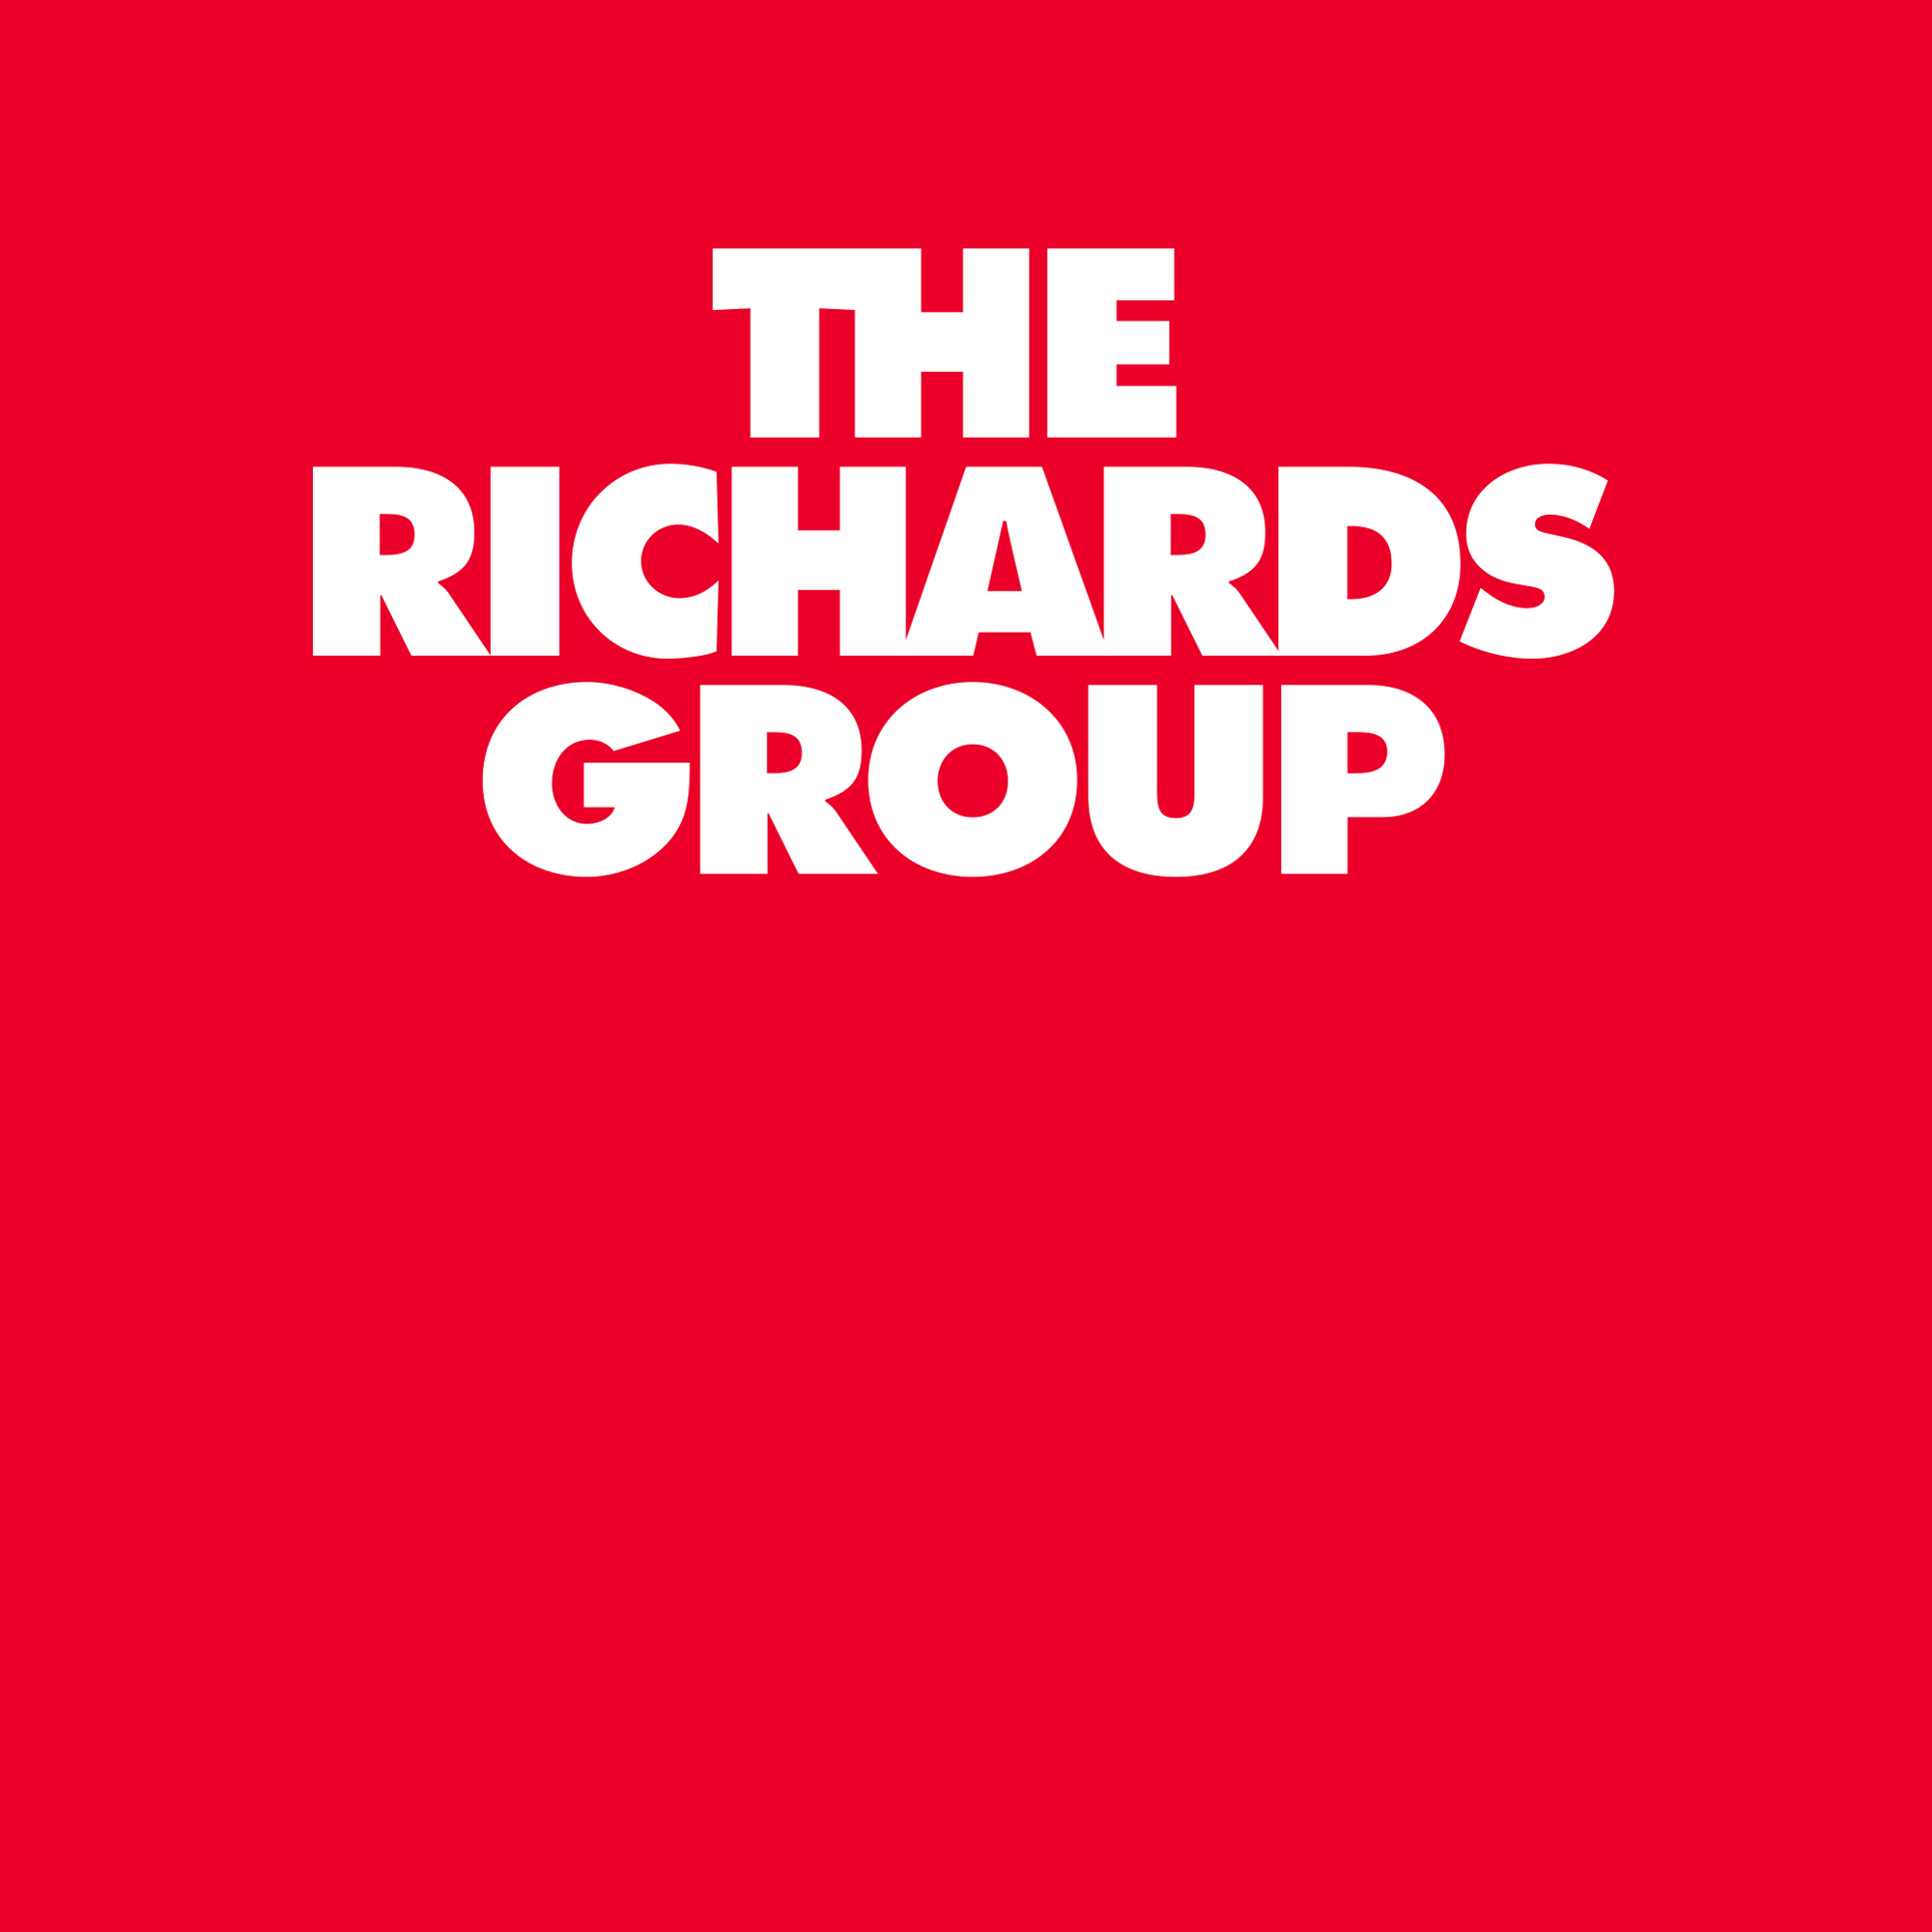 The-Richards-Group_The-StratLab-Client.jpg